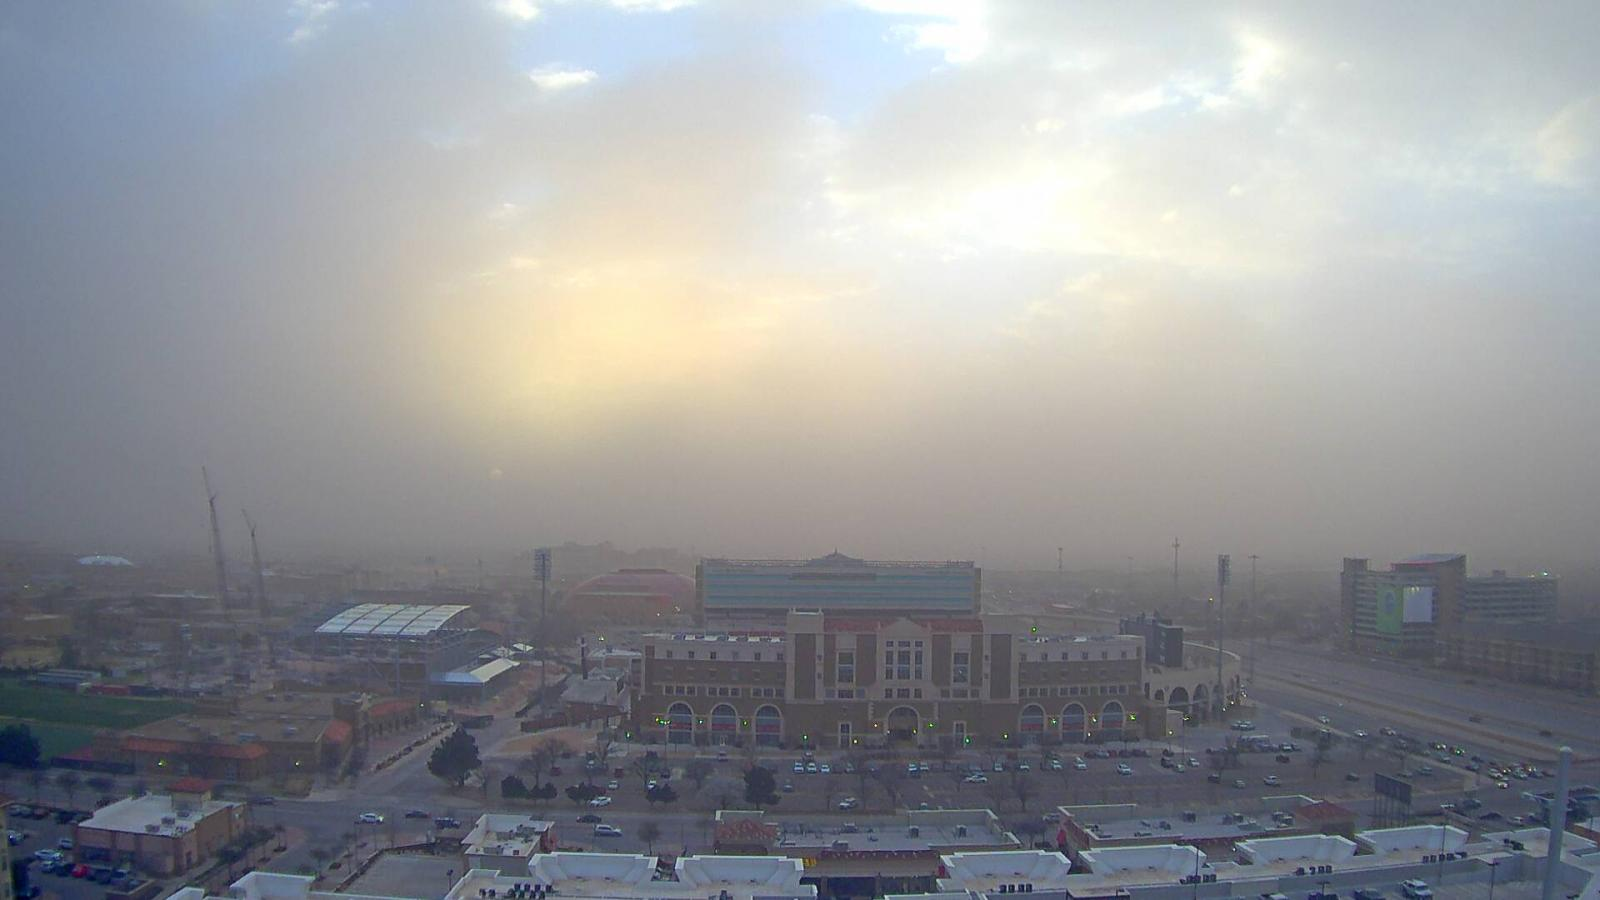 A dusty, albeit strangely picturesque image captured just before sunset looking over the north side of the Texas Tech Campus.The pictures is courtesy of KAMC.